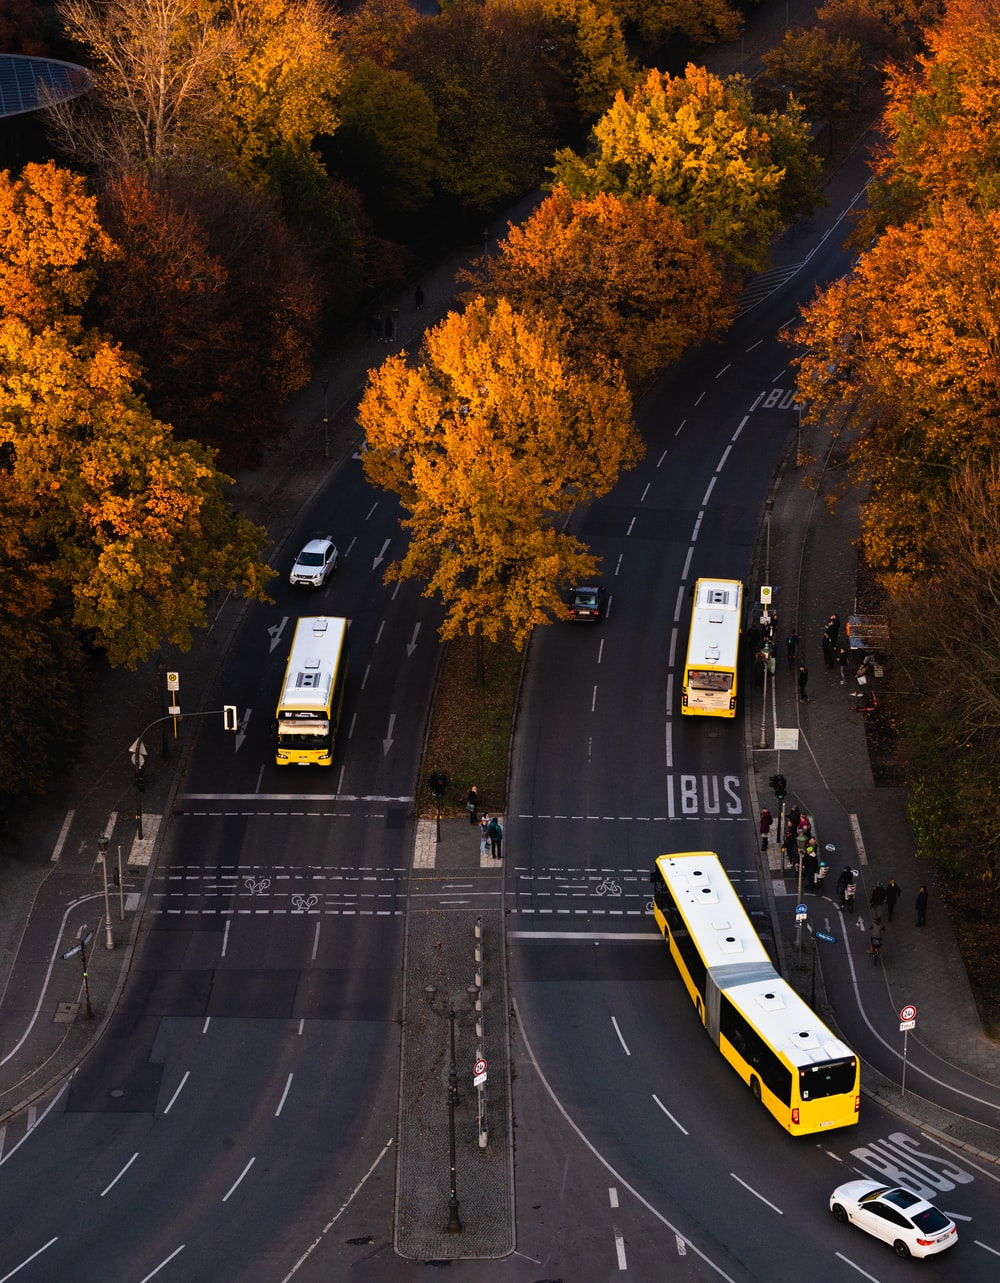 buses on road during daytime